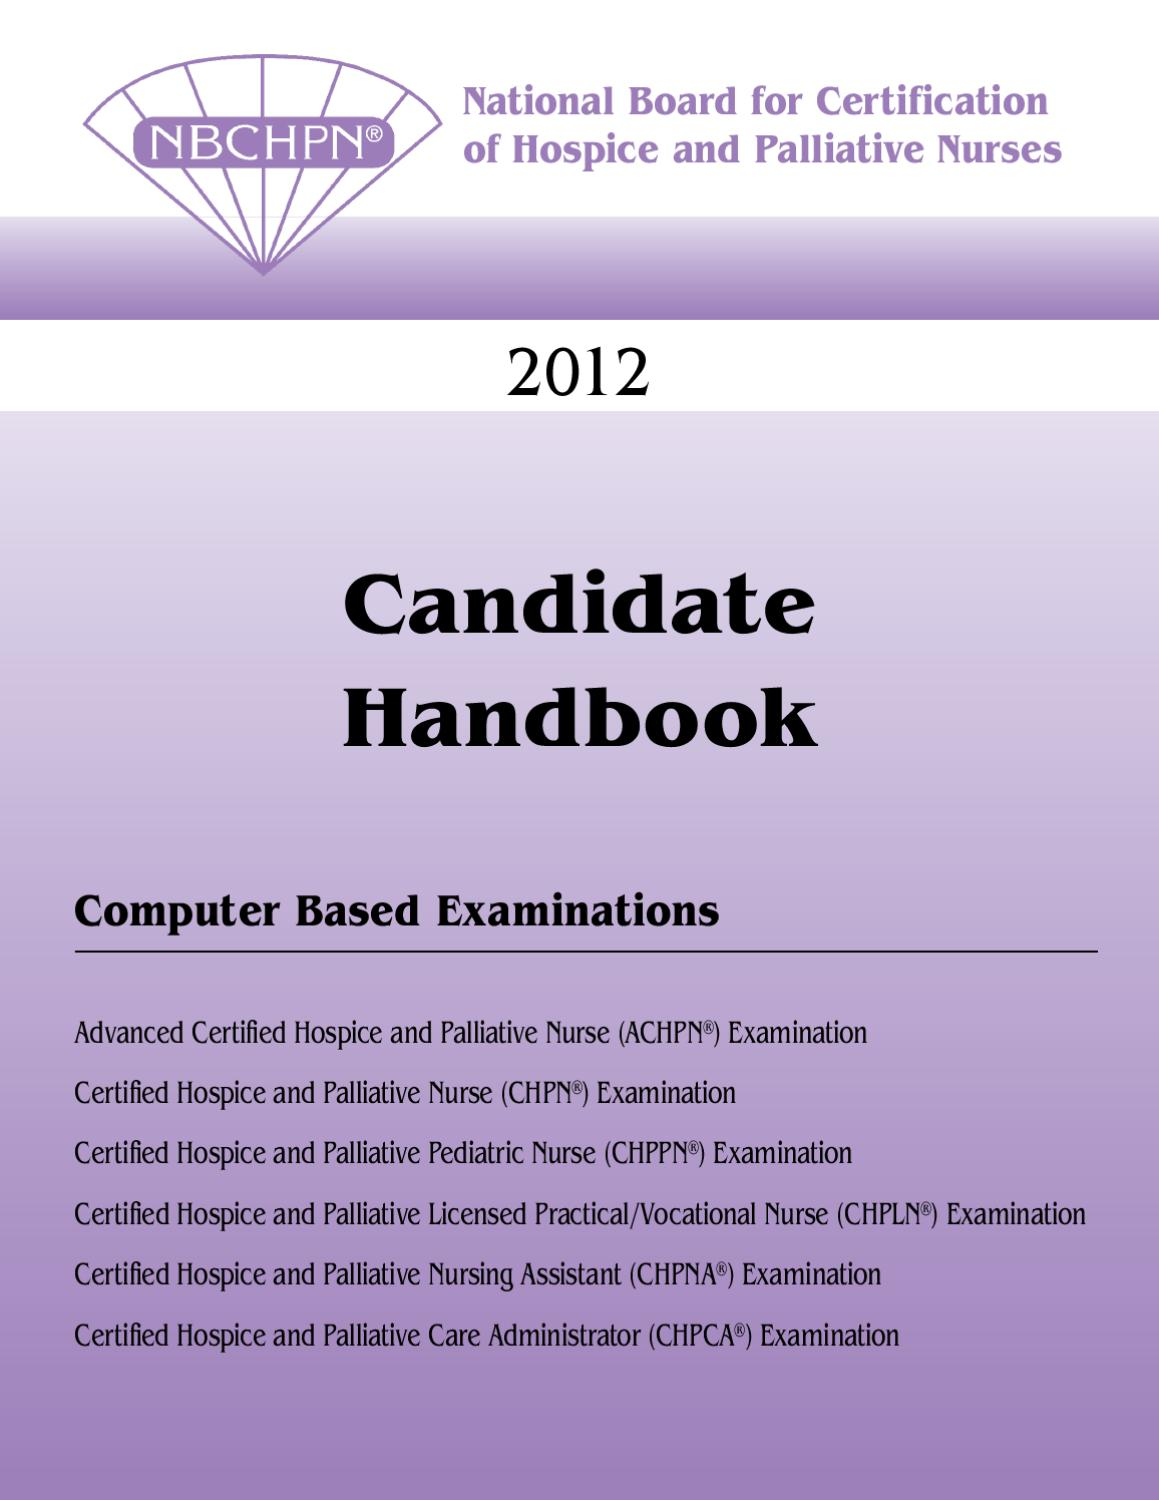 Nbchpn Candidate Handbook 0512 By Hospice And Palliative Nurses